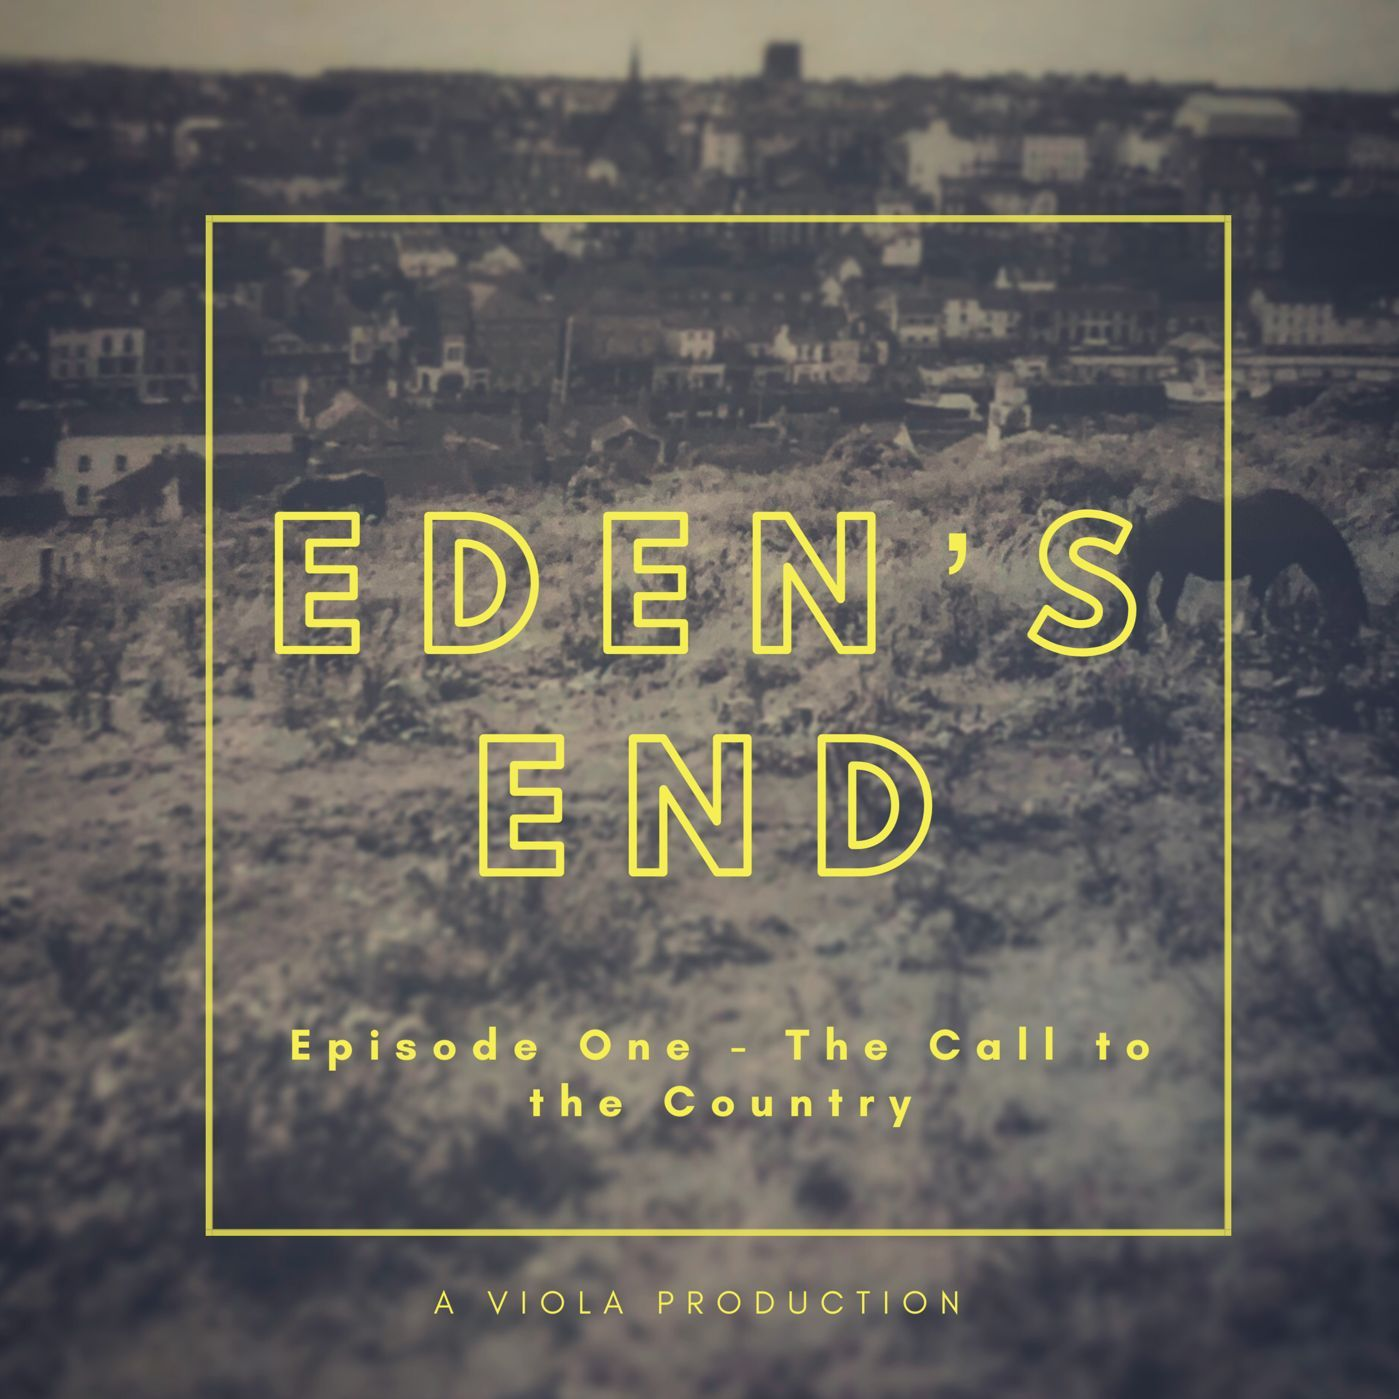 Eden's End, Episode 1 - The Call to the Country